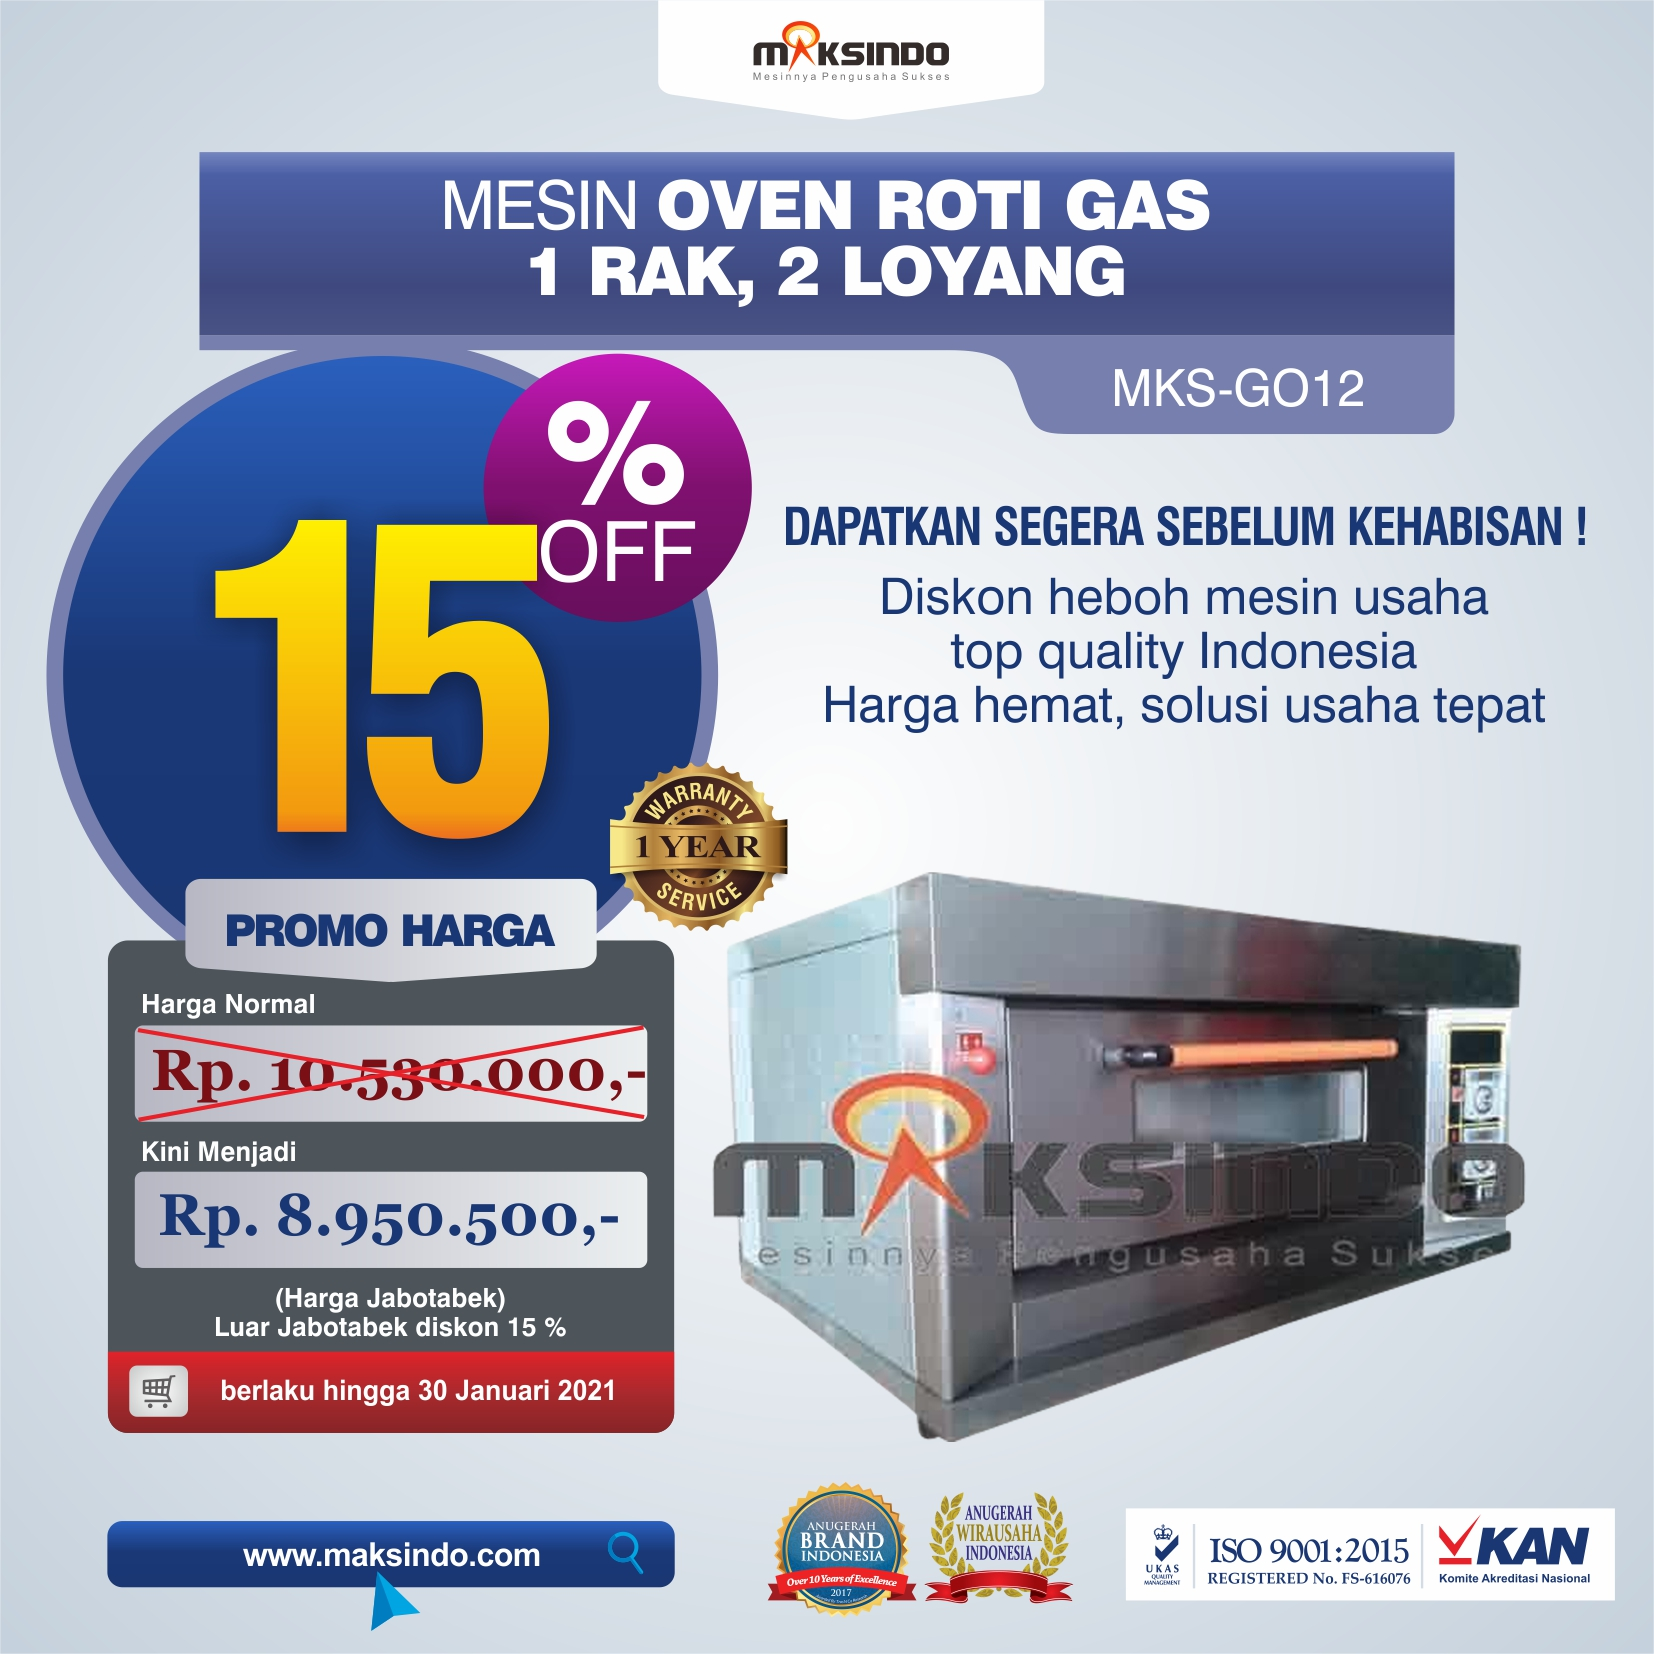 Mesin Oven Gas 2 Loyang (MKS-GO12)